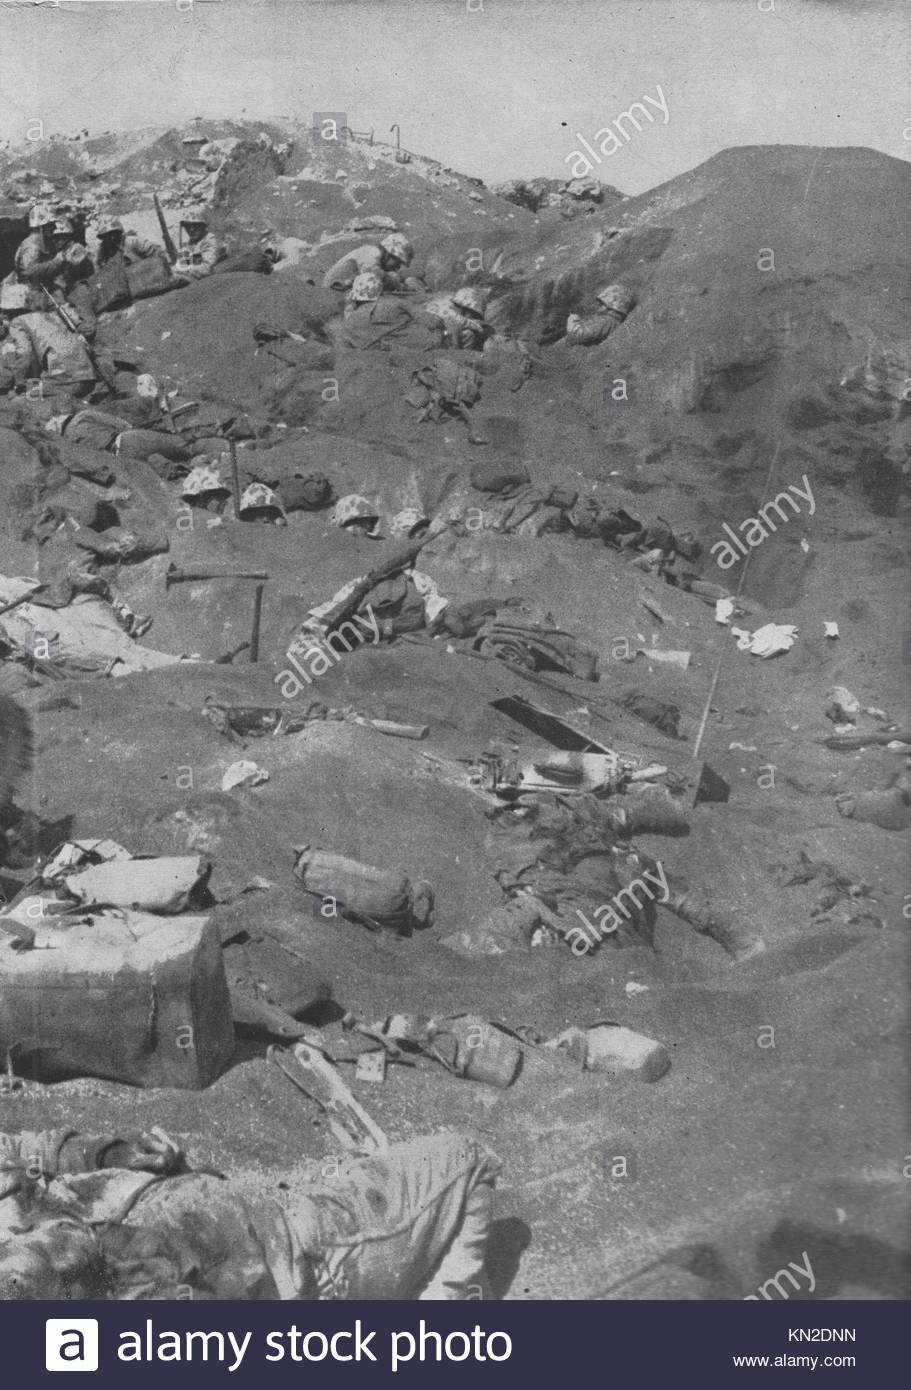 Japanese soldiers lie dead in Iwo Jima.The Battle of Iwo Jima (19 February – 26 March 1945) was a major battle in - Stock Image